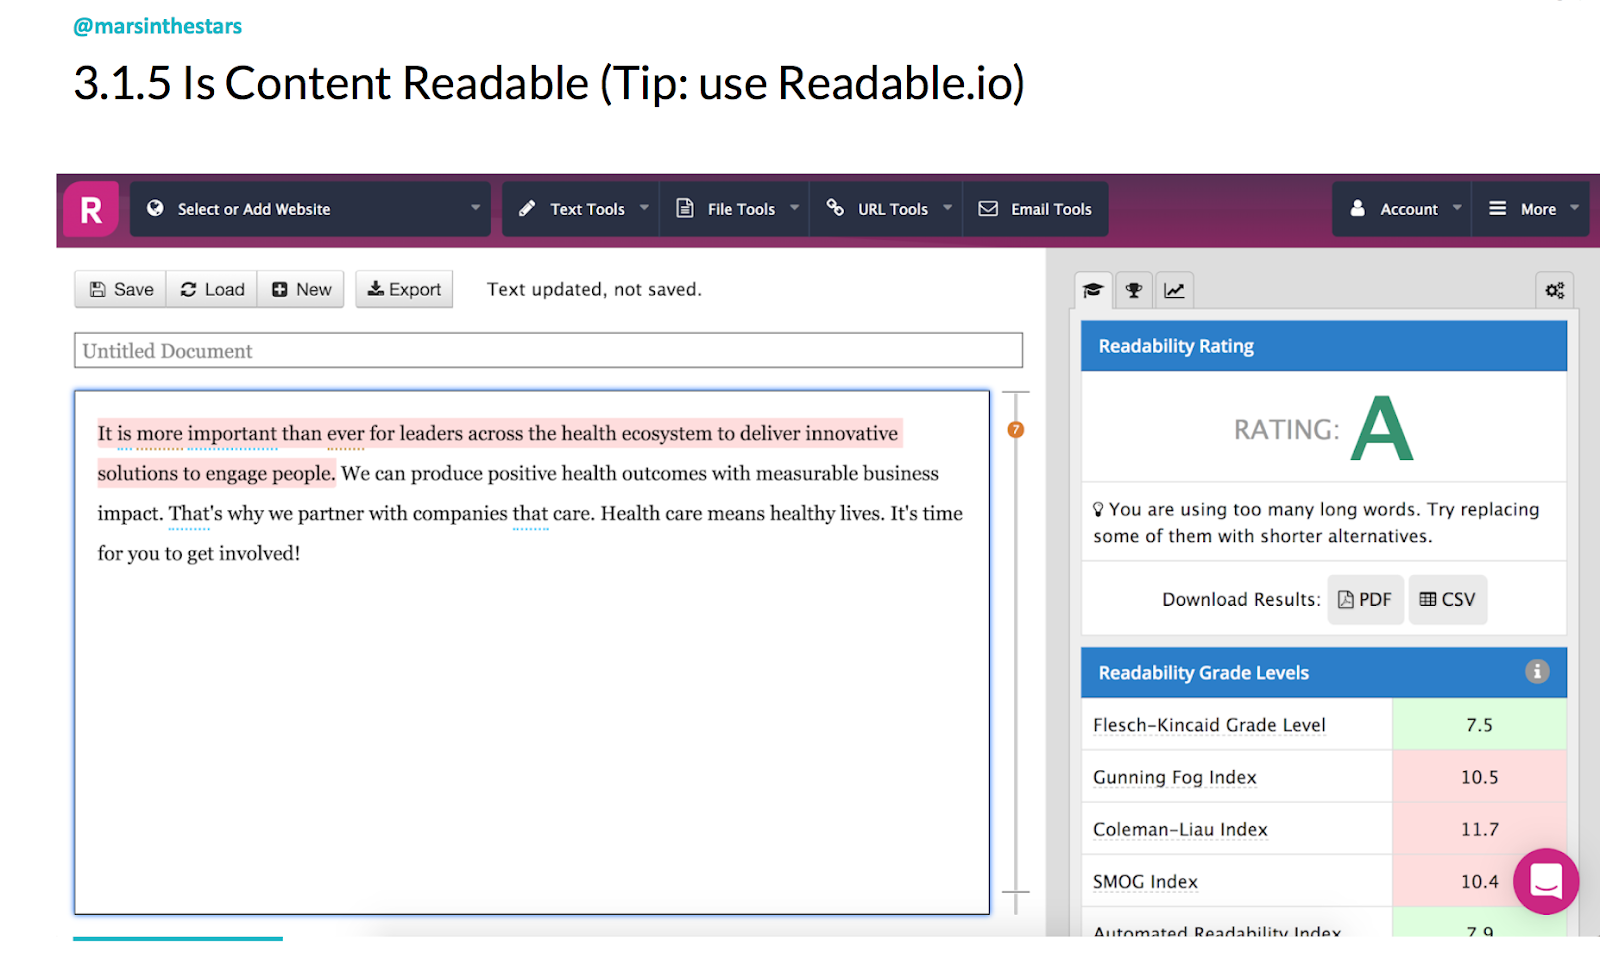 """Slide shows some text in the readable app which is graded using Flesch-Kincaid Grade Level, Gunning Fox Index, Coleman-Liau Index and SMOG Index. It shows the readability rating and tips for improving it (e.g. """"you are using too many long words. Try replacing them with shorter alternatives."""")"""